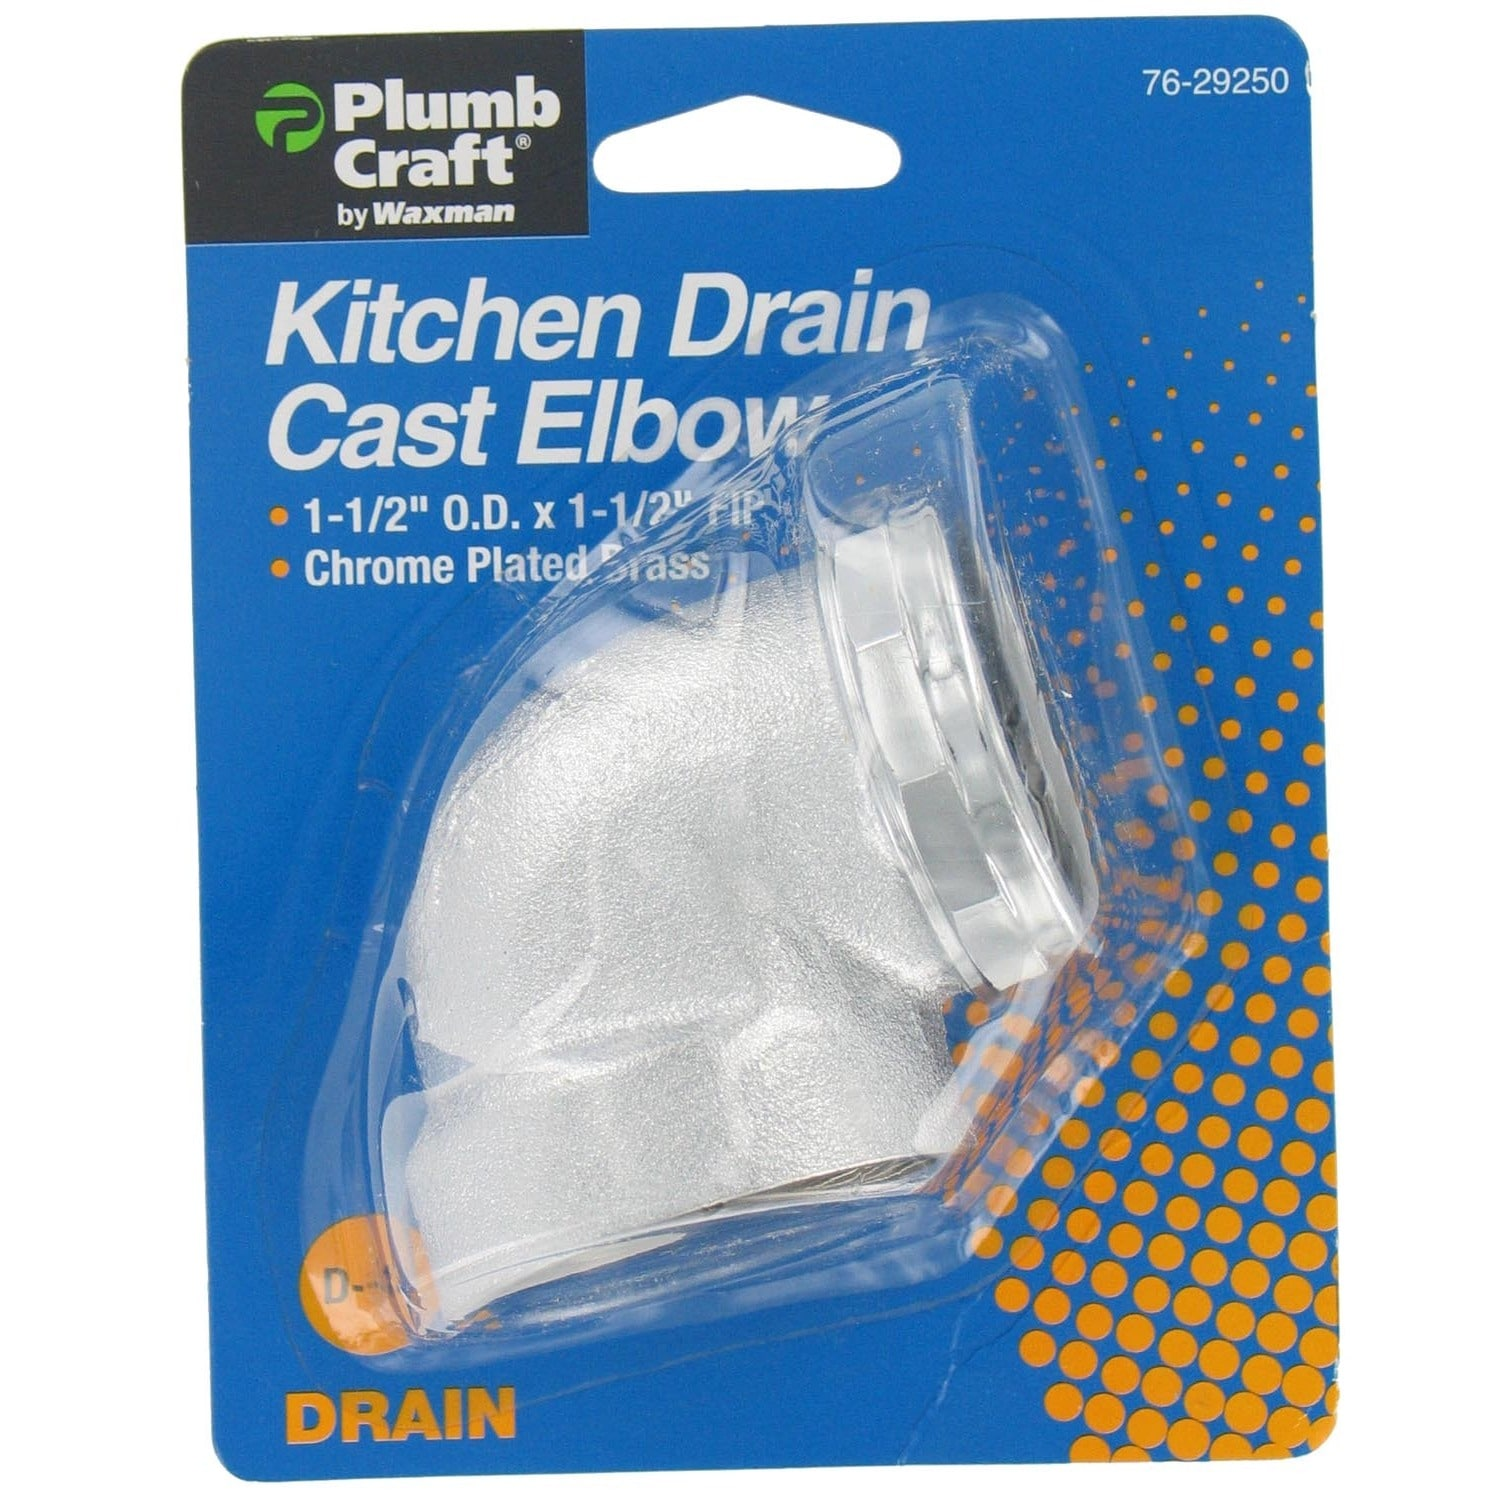 Plumb Craft Waxman 7629250 Kitchen Drain Cast Elbow (Ell ...